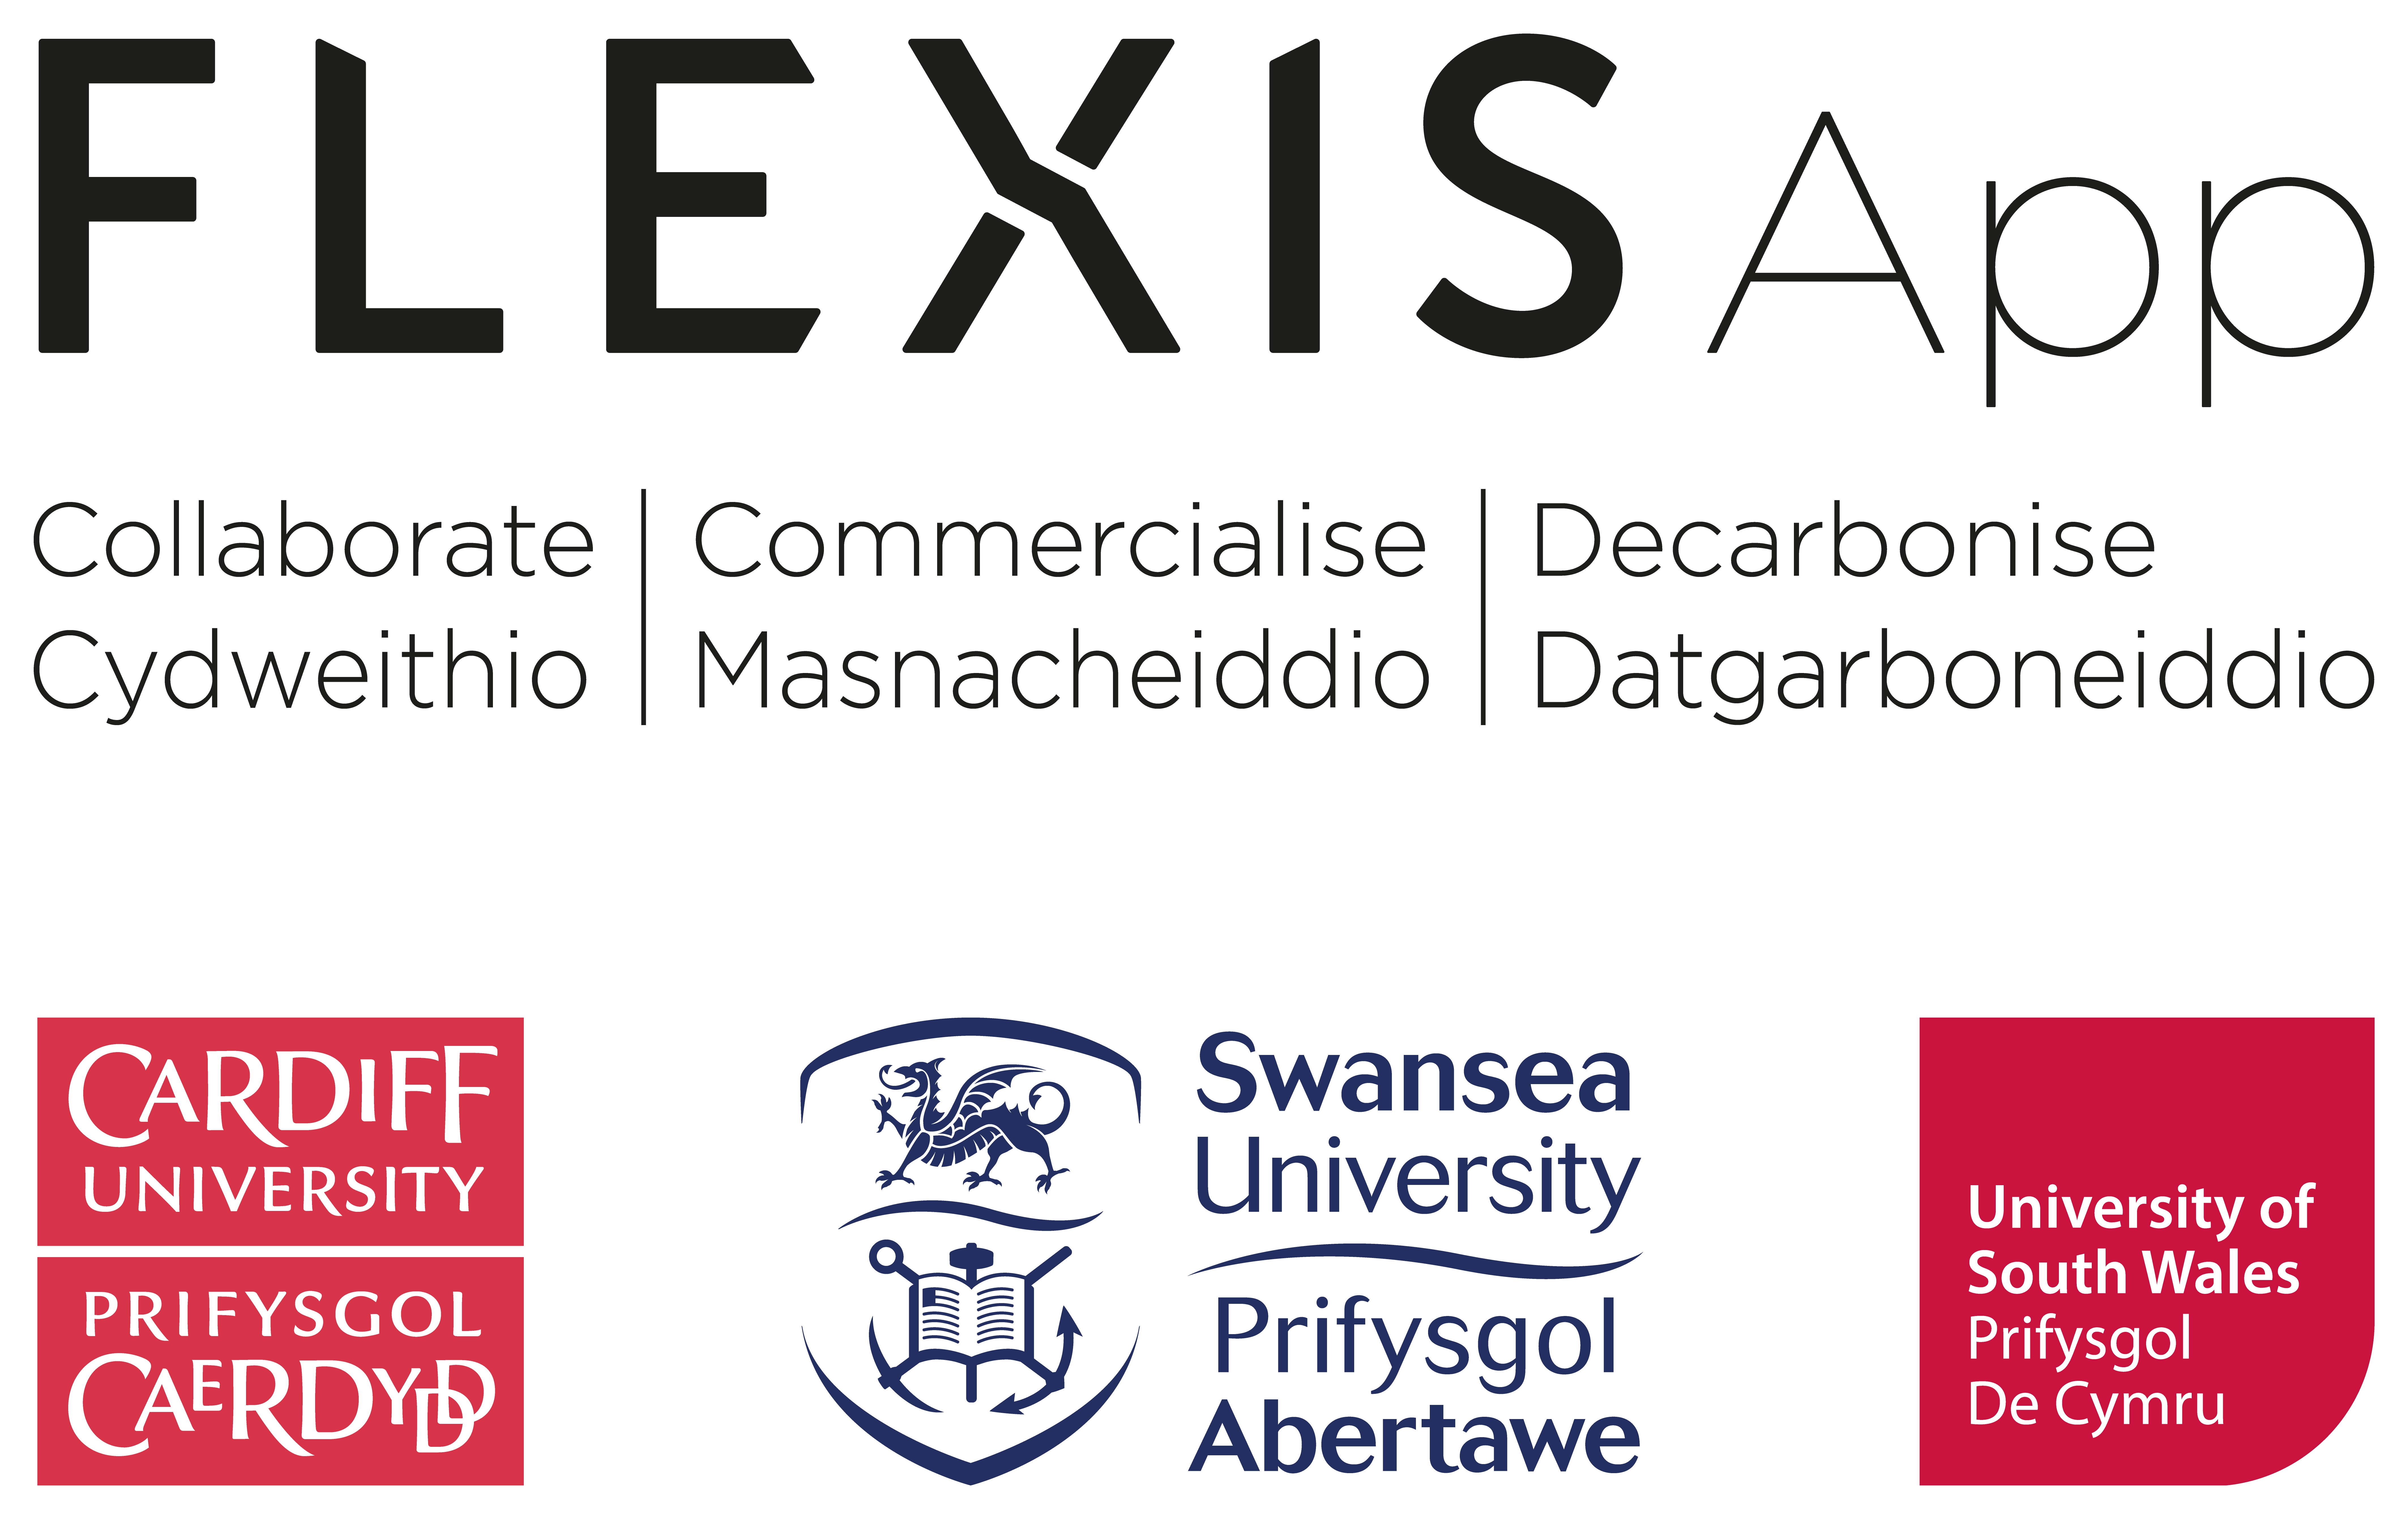 FLEXISApp project logo with partnership universities Cardiff, Swansea and University of South Wales